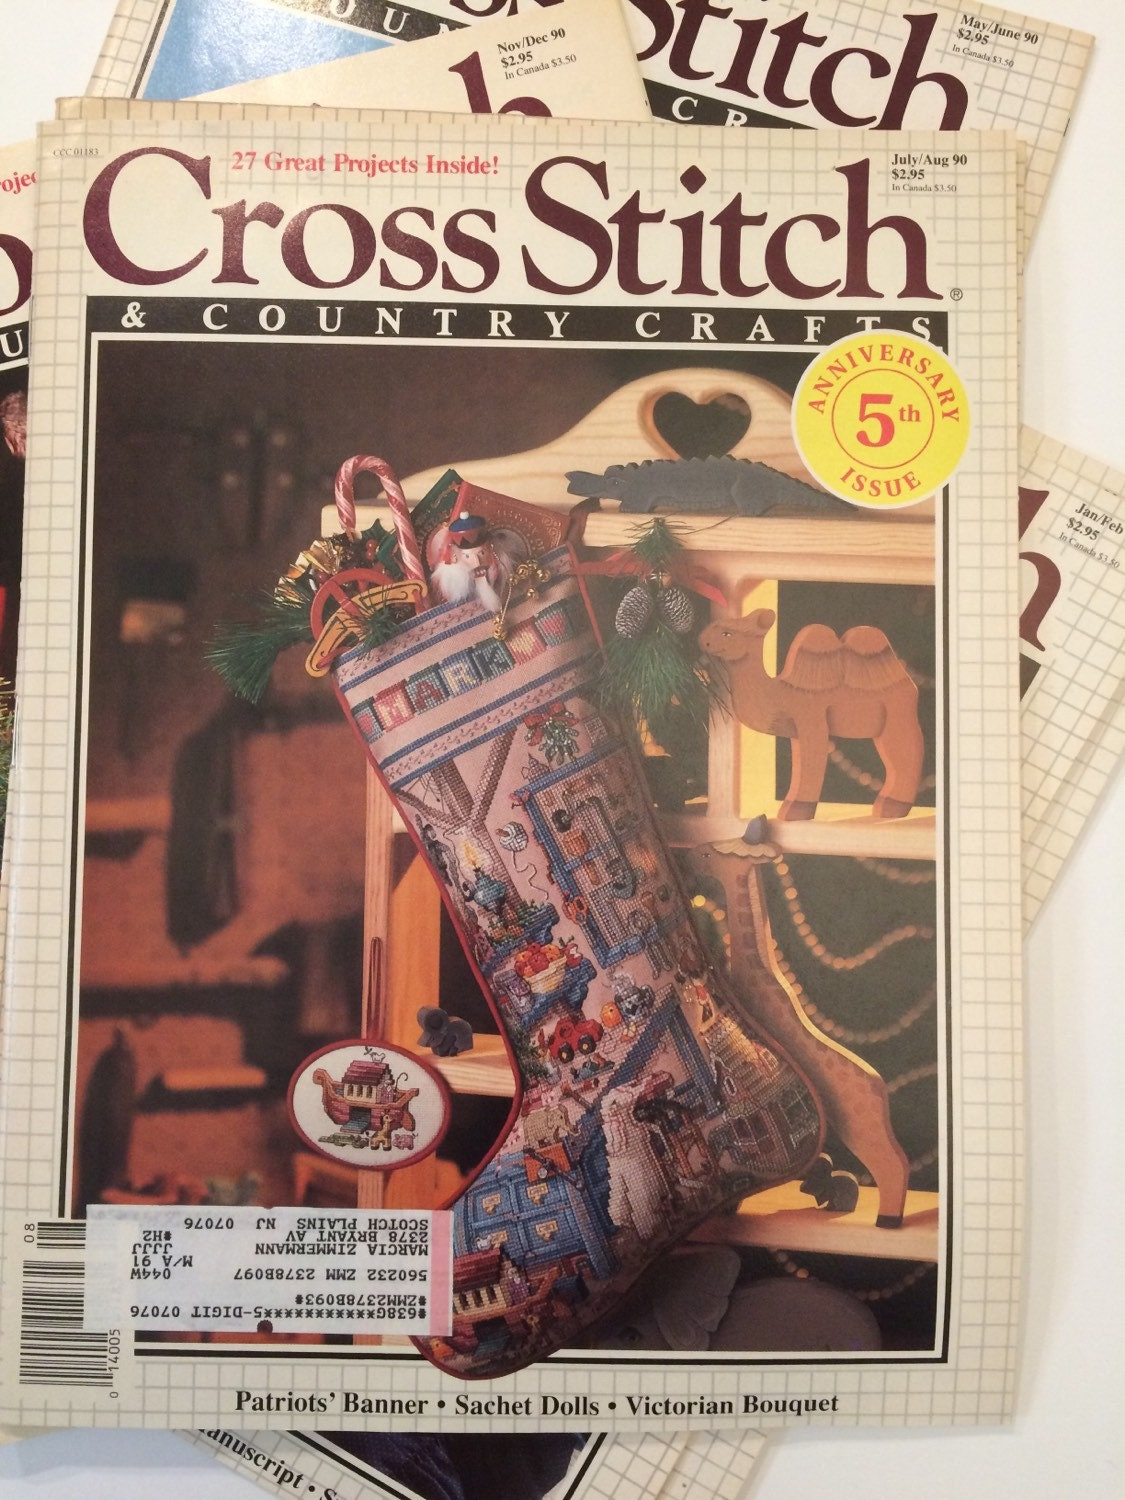 Cross stitch country crafts magazine back issues - Cross Stitch And Country Crafts Magazines 1990 Complete Year 6 Issues Sold By Lagunalane 20 00